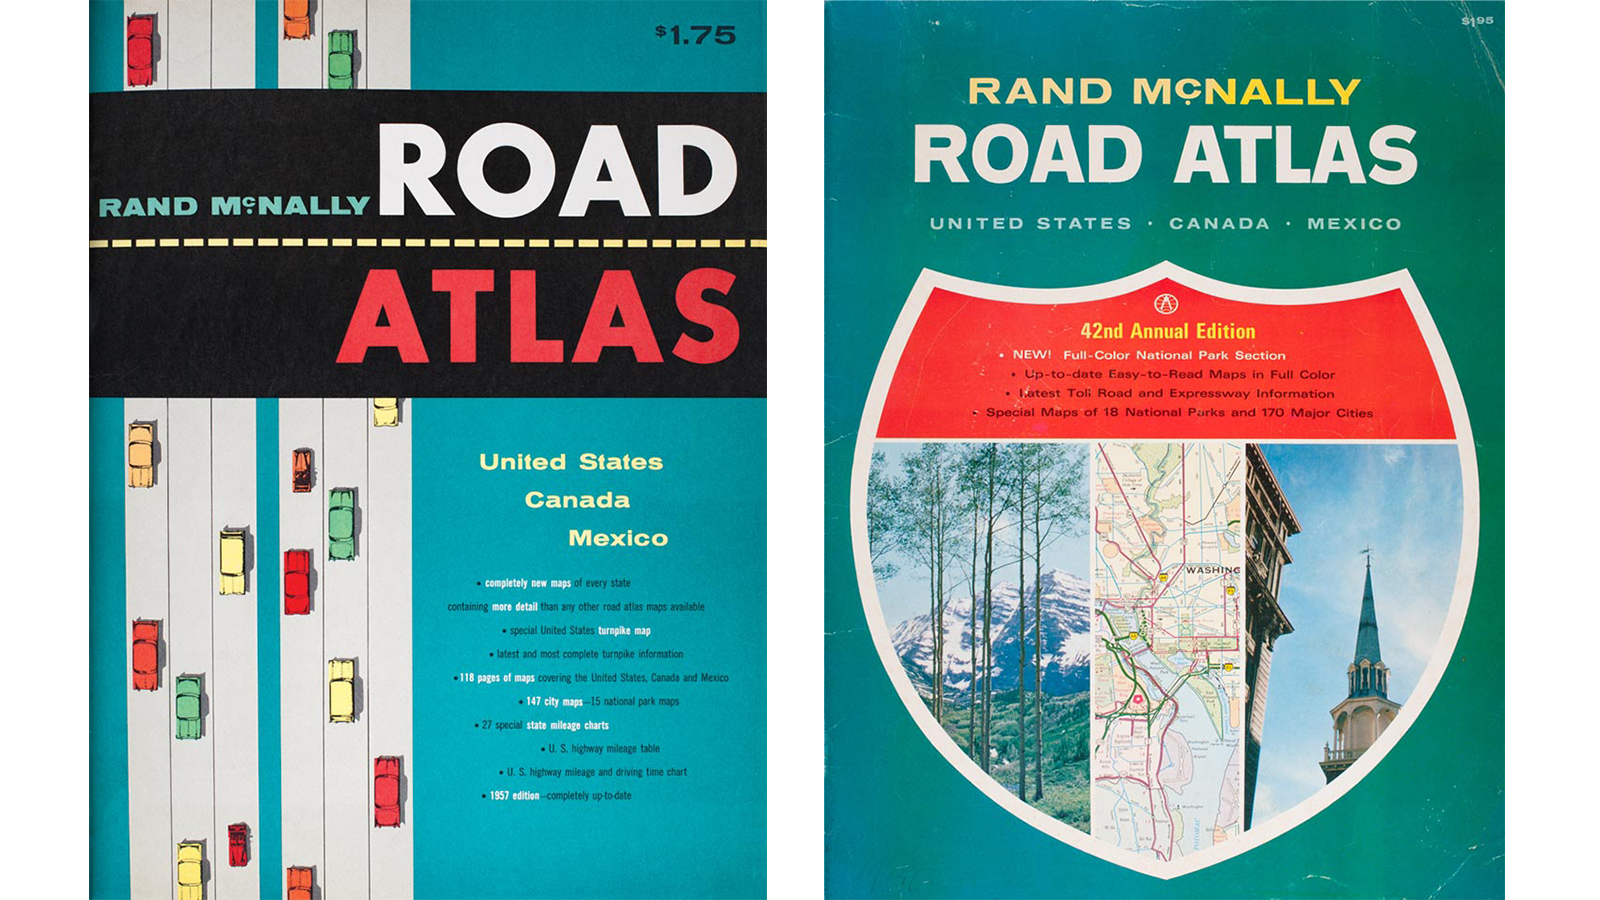 Rand McNally vintage atlases map the great American road trip   CNN on